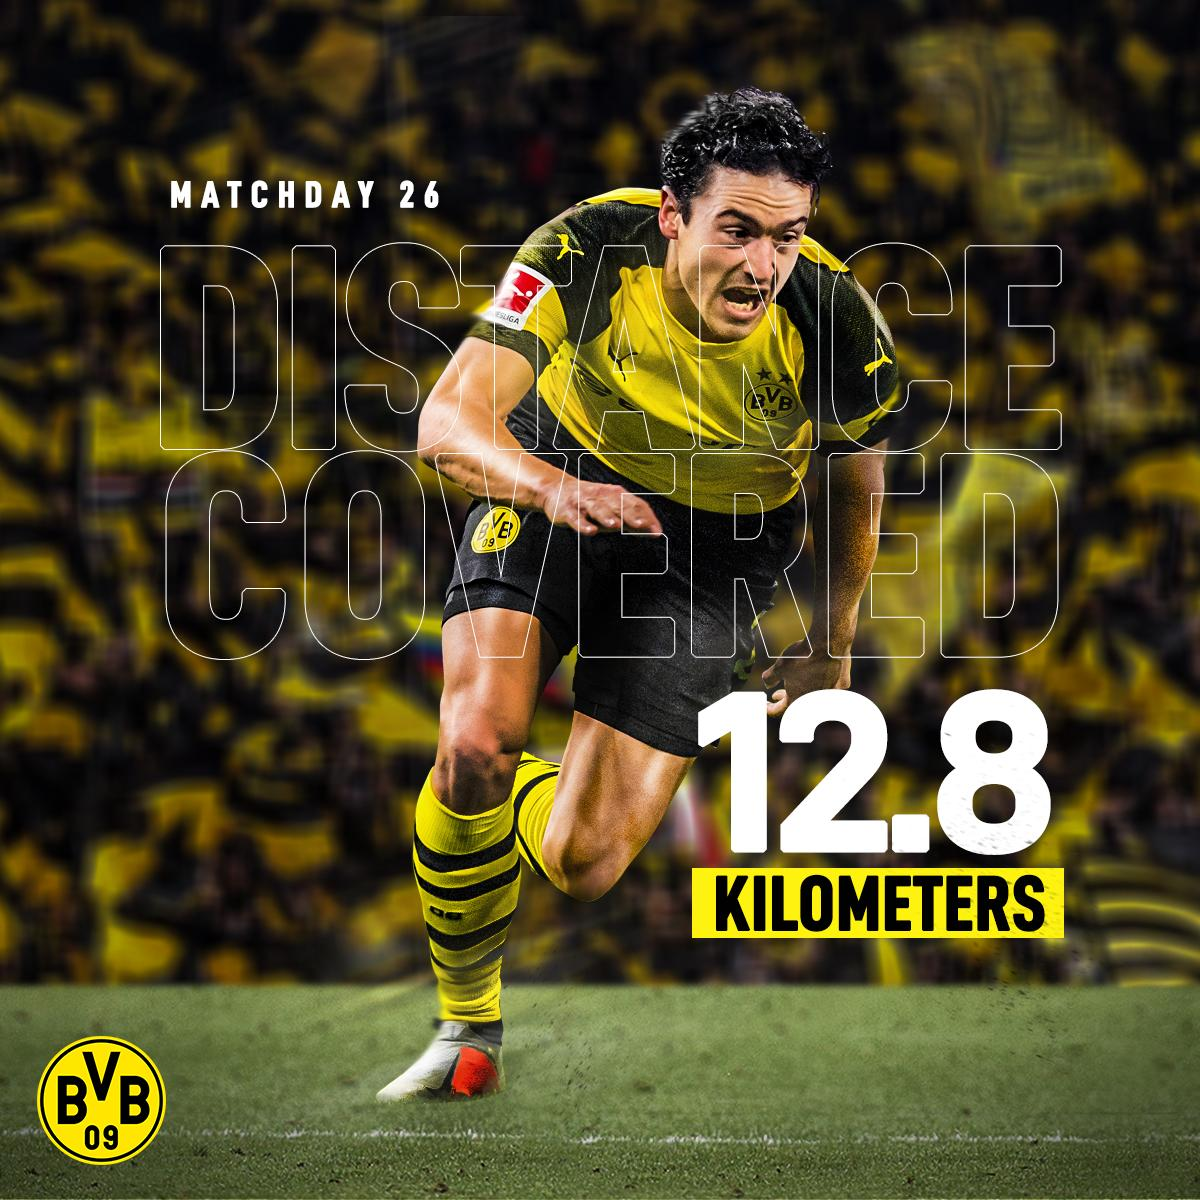 Thomas Delaney was MOVING on MD26, covering more ground than any other player in the Bundesliga 🏃‍♂️💨